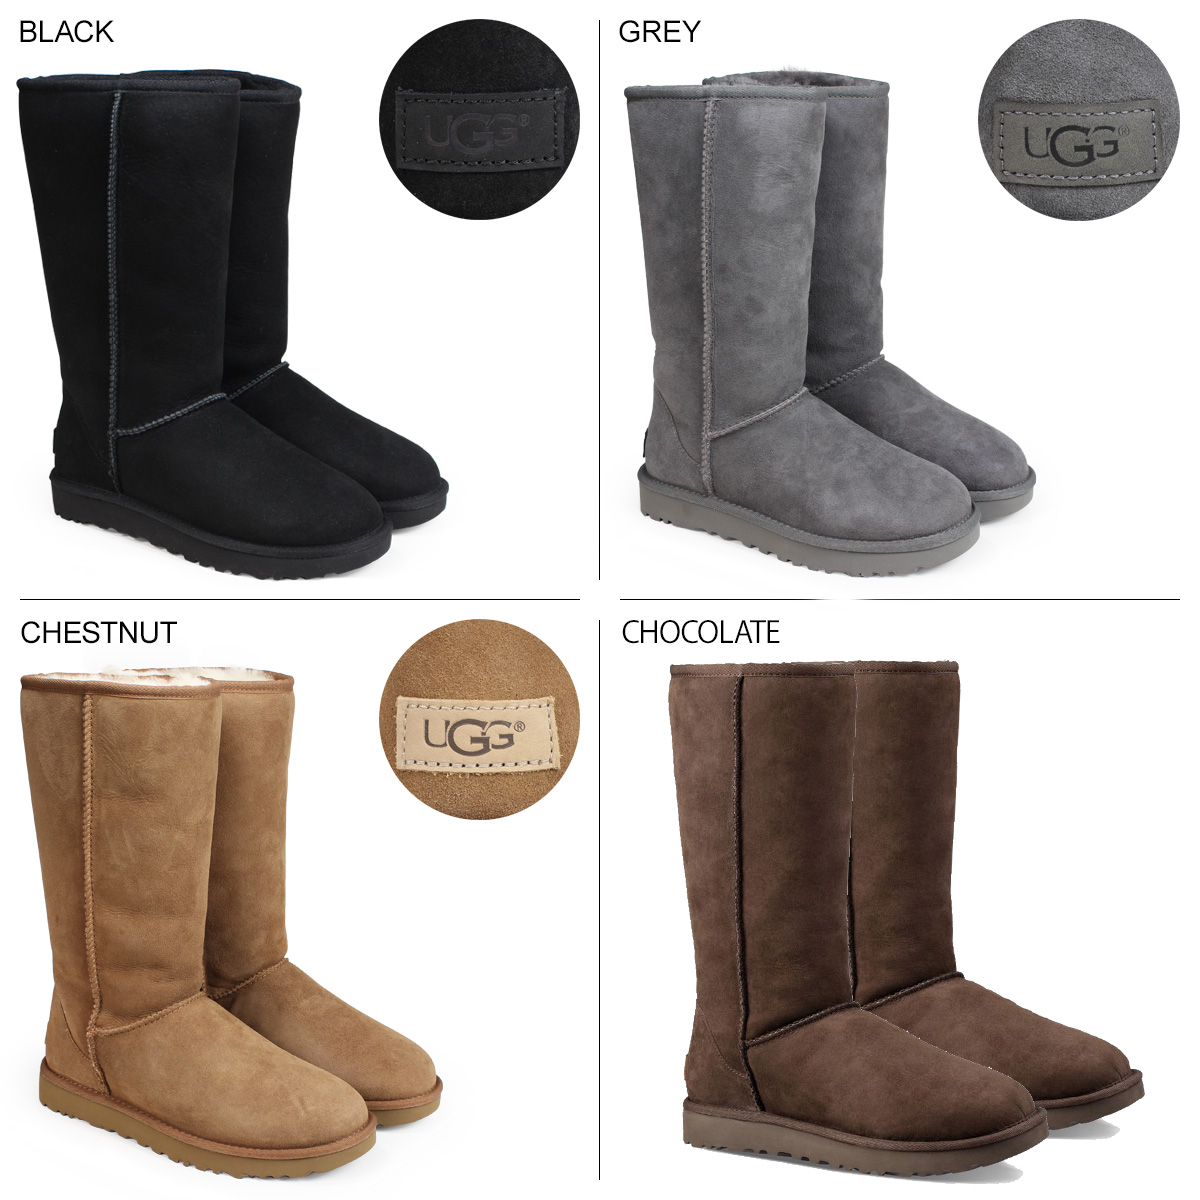 edc64e248bd UGG CLASSIC TALL II BOOT アグムートンブーツクラシックトール 1016224 Lady's [1810]